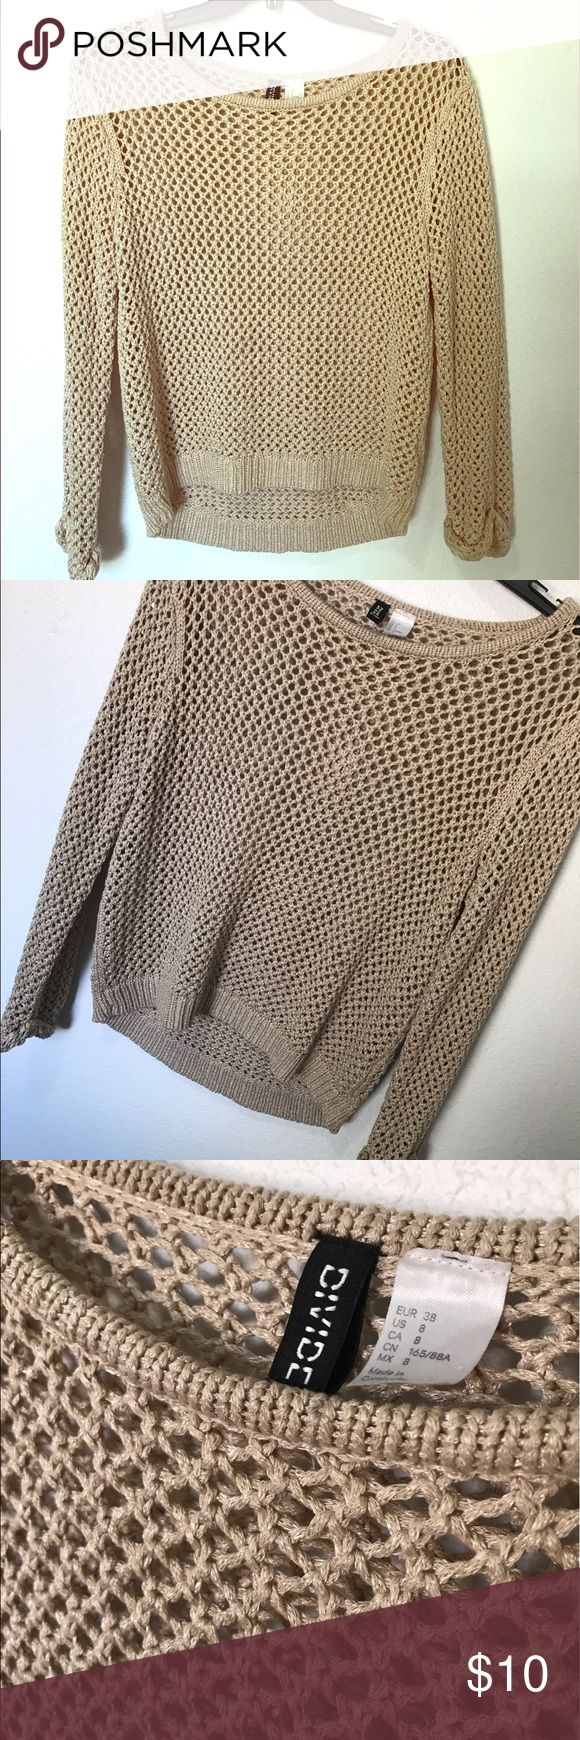 H&M chain style pullover This top is really comfortable and since it's nude it pairs nicely with many colors. Really cute with just a swim suit top underneath or a nude bandeau H&M Tops Tees - Long Sleeve